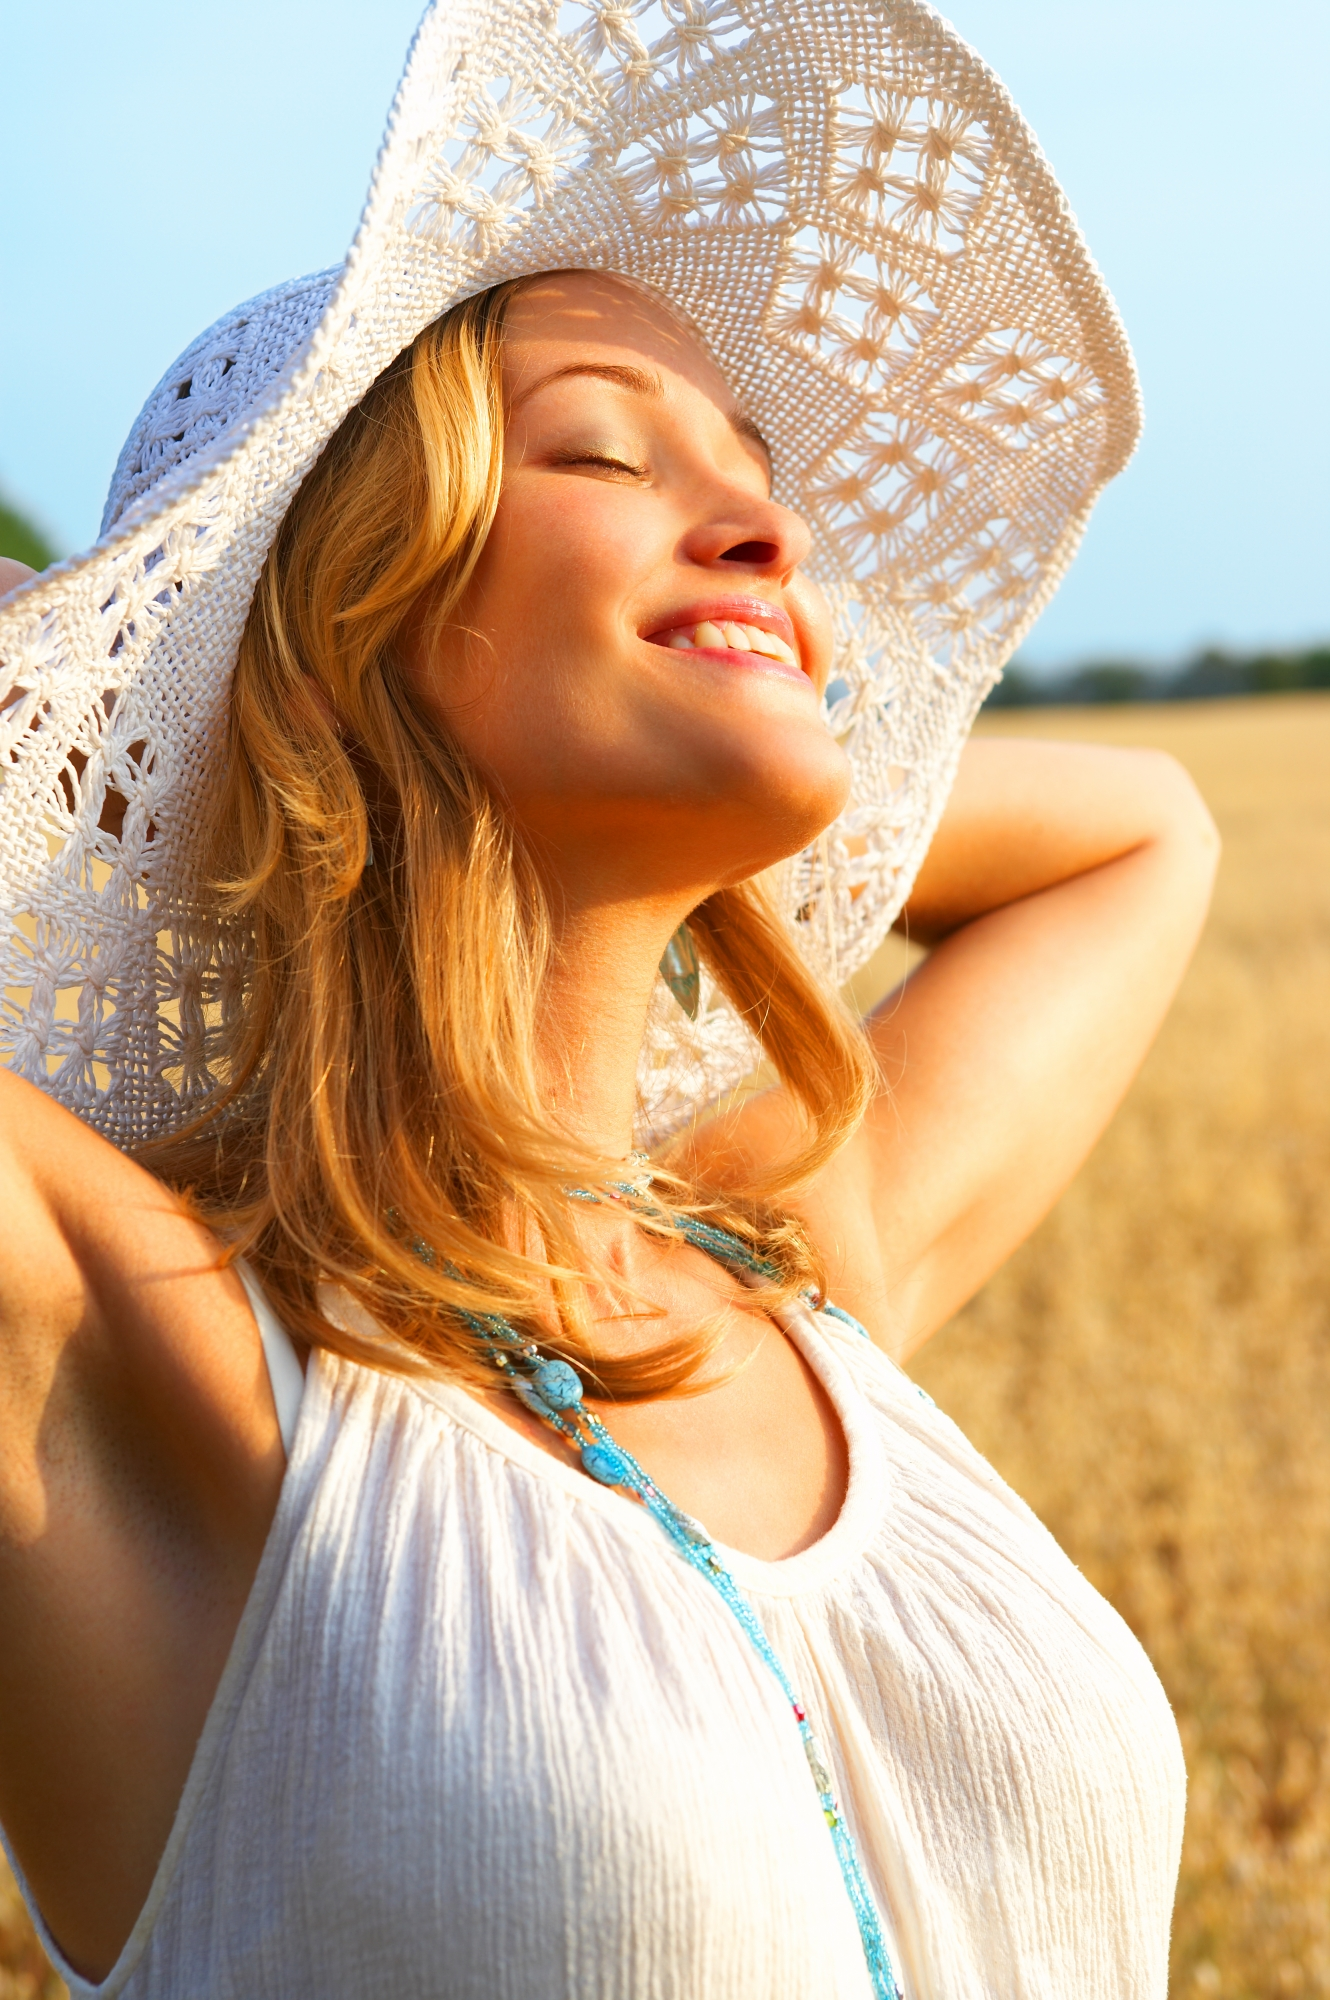 Woman standing in field wearing hat for protection from sun - Medical-grade sunscreen can help, too!